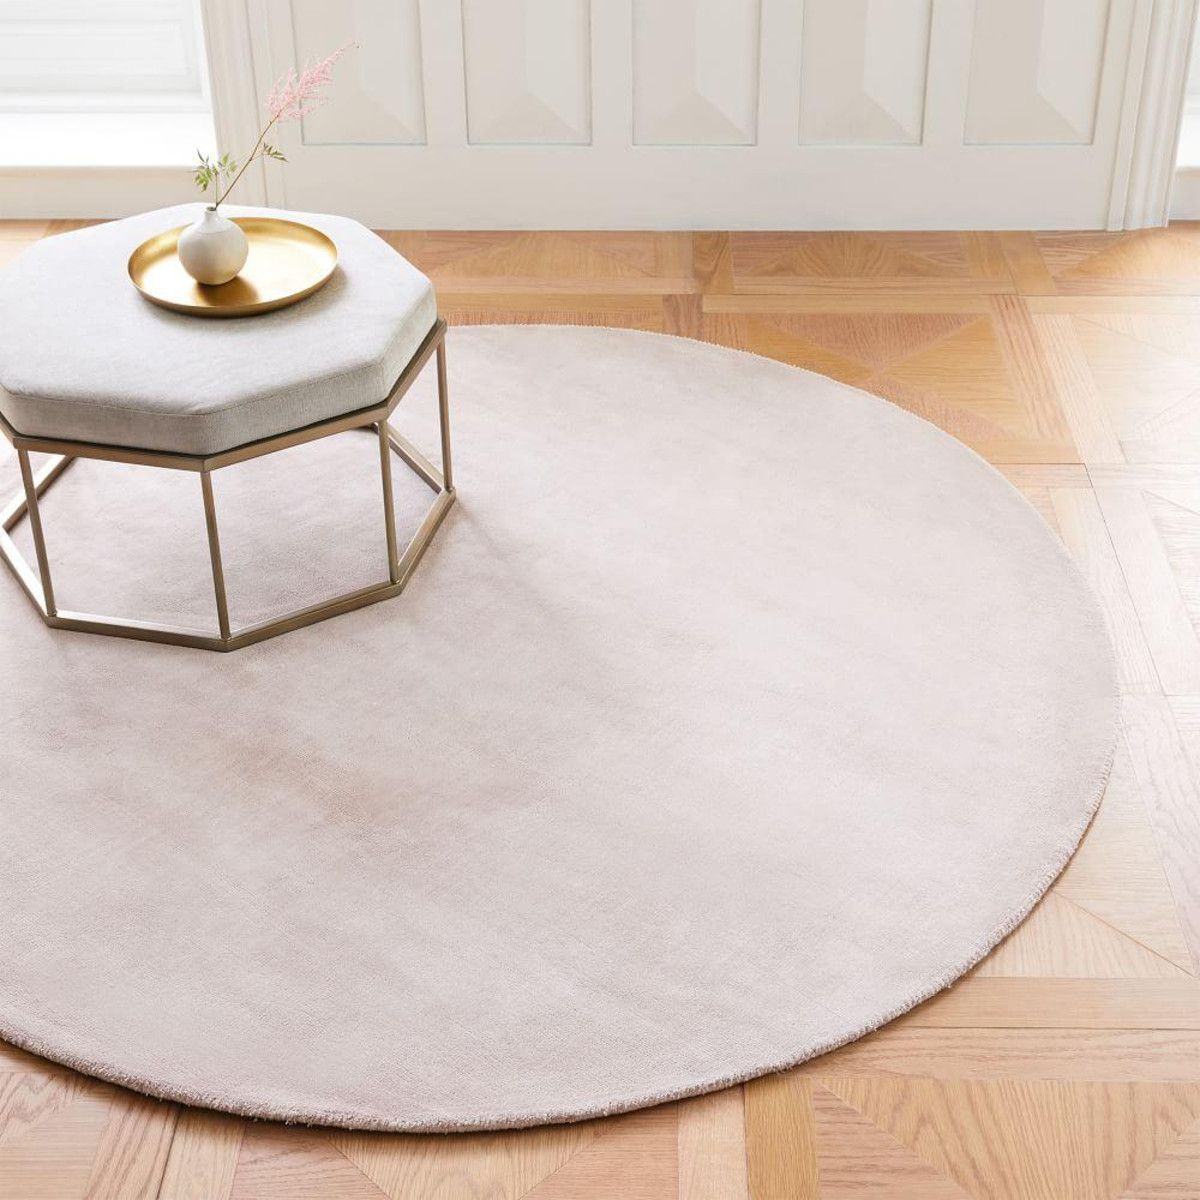 Lucent Round Rug Dusty Blush Round Rugs Rugs Area Rugs Diy